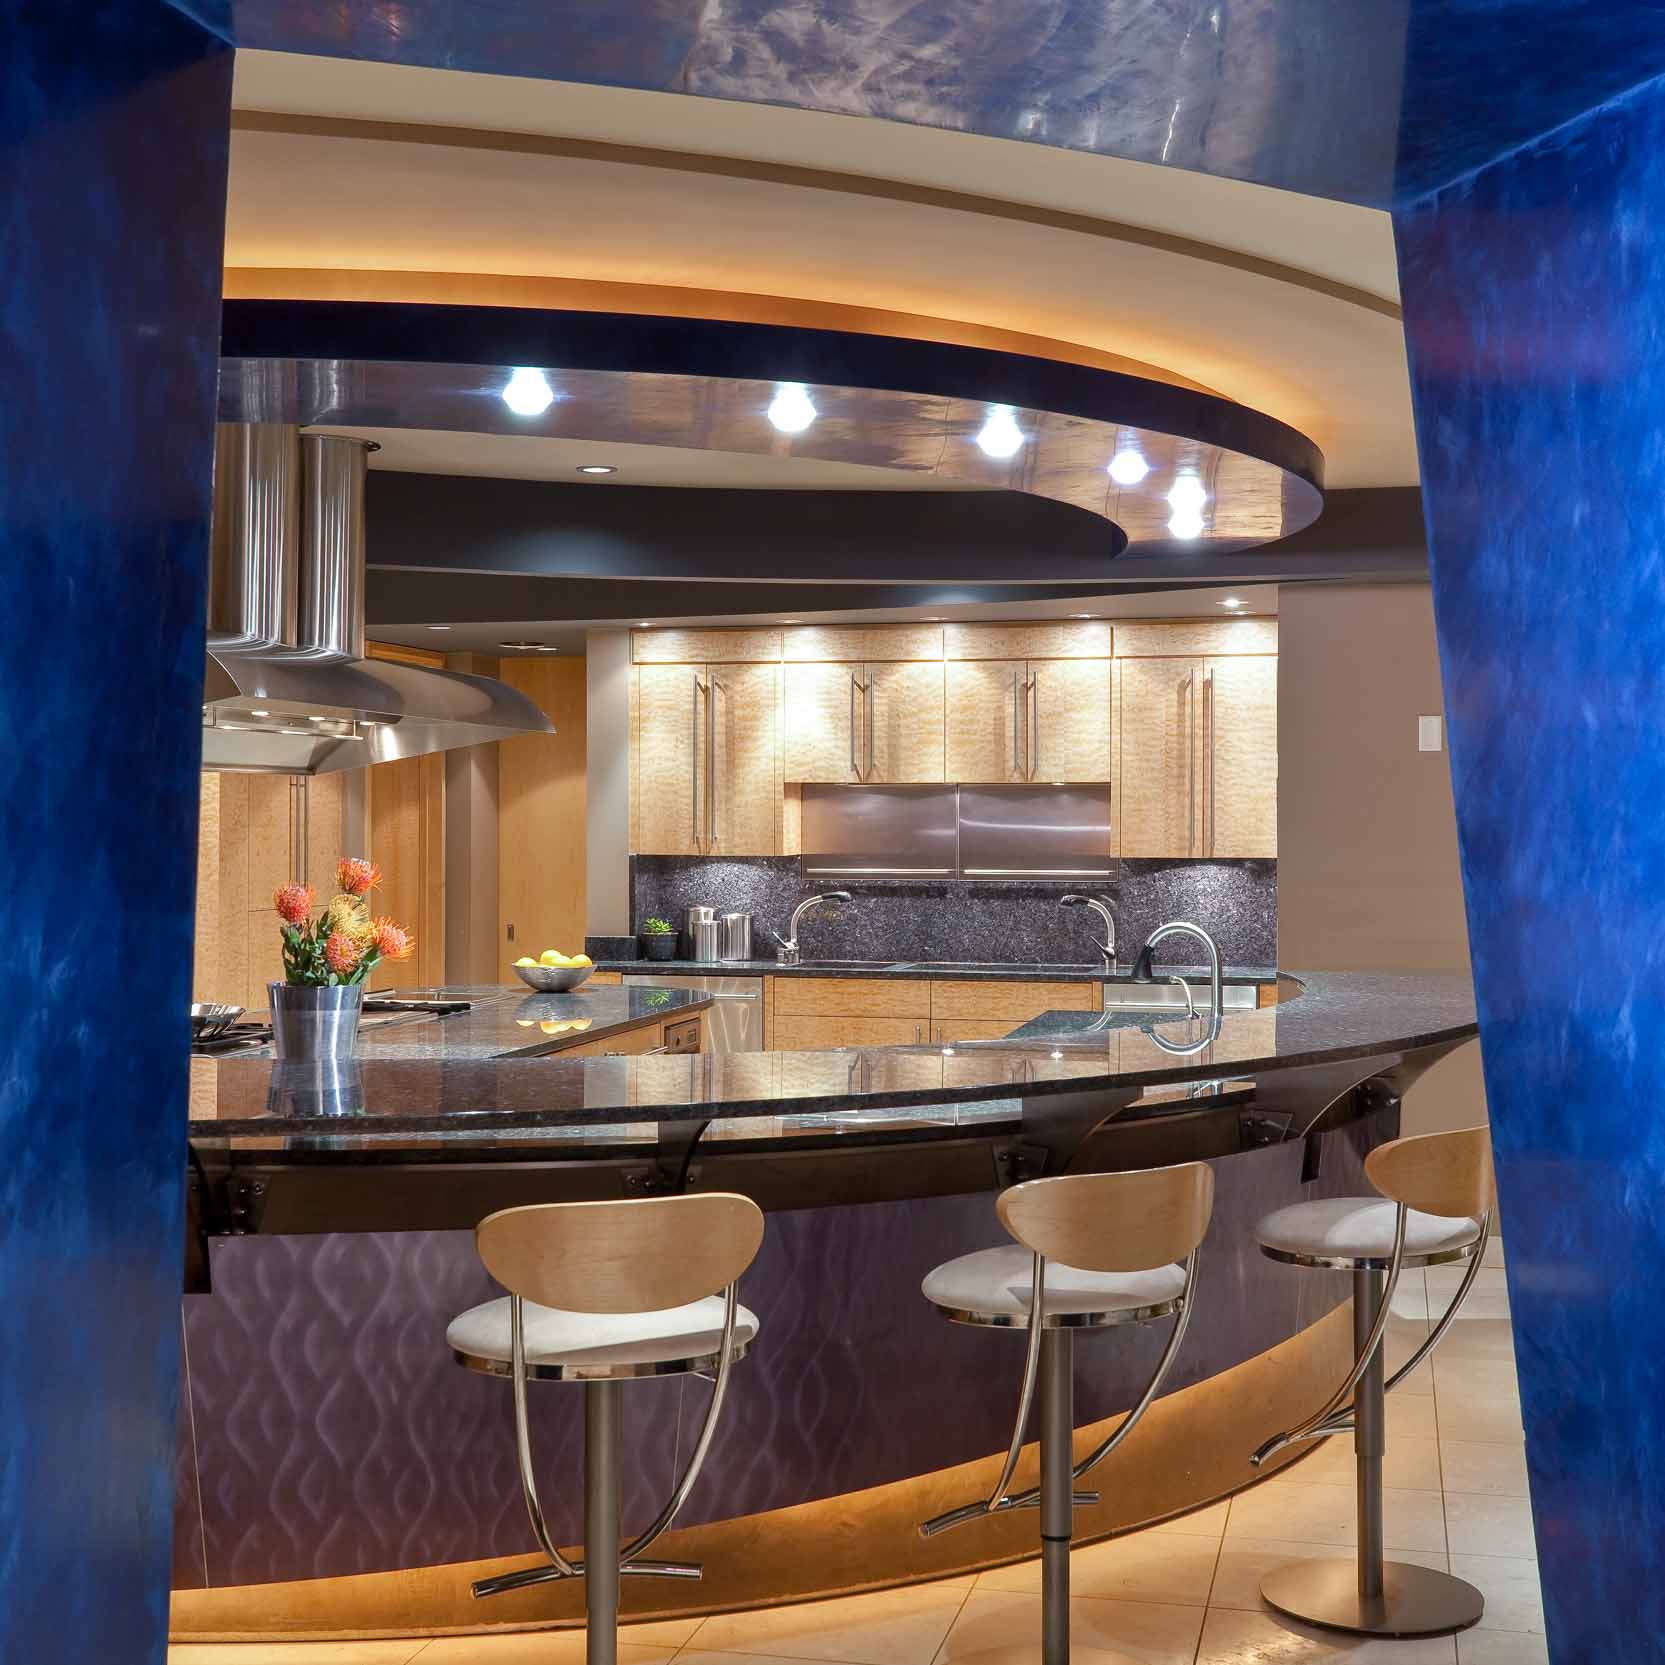 High Tech Modern Blue Kitchen In Minneapolis, Minnesota